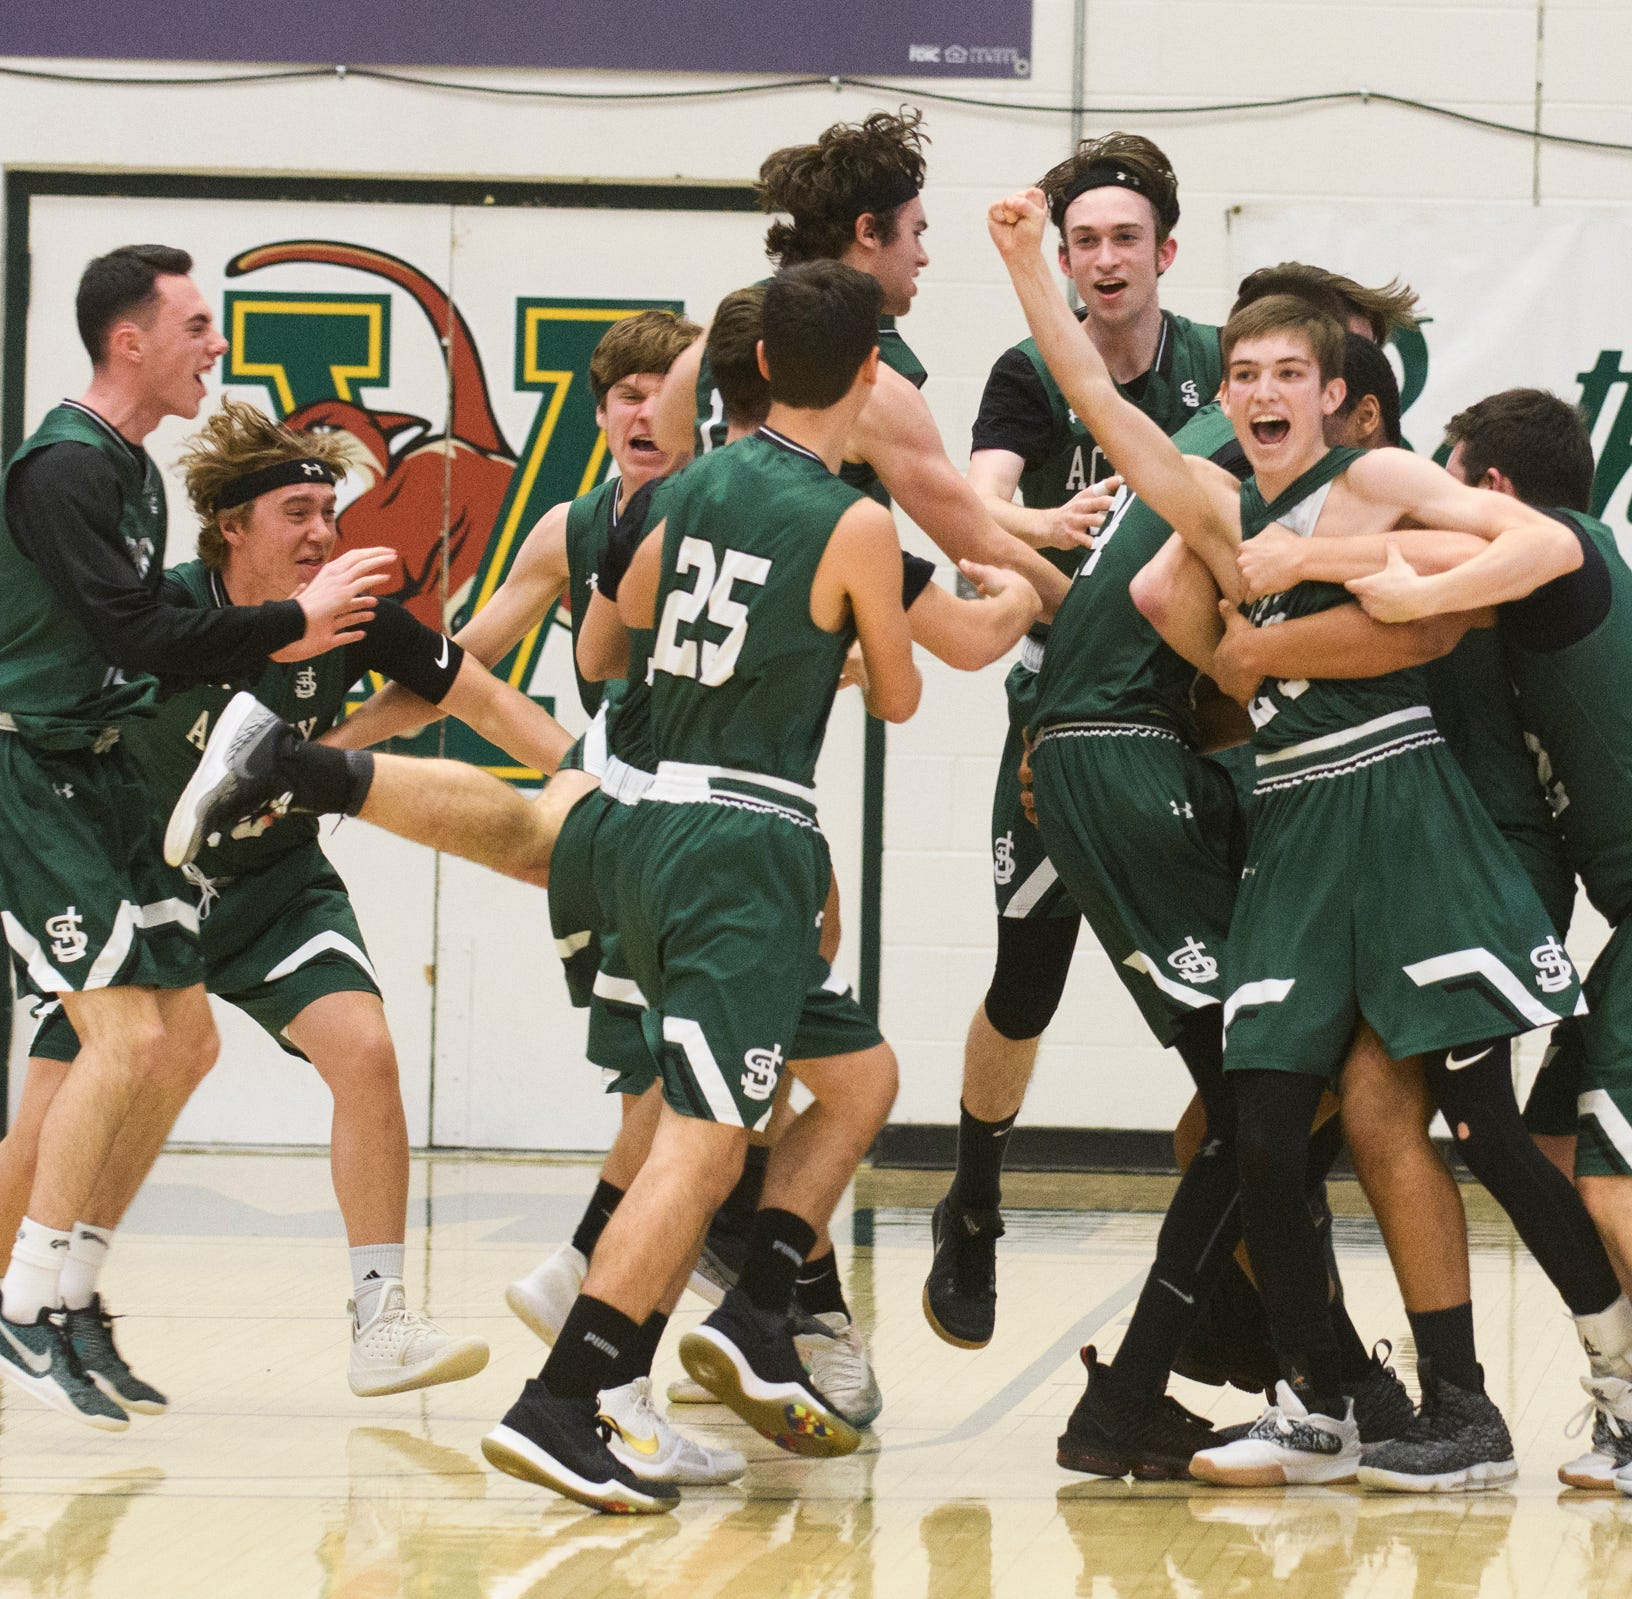 St. Johnsbury stuns Rice in final seconds of D-I boys basketball semifinals